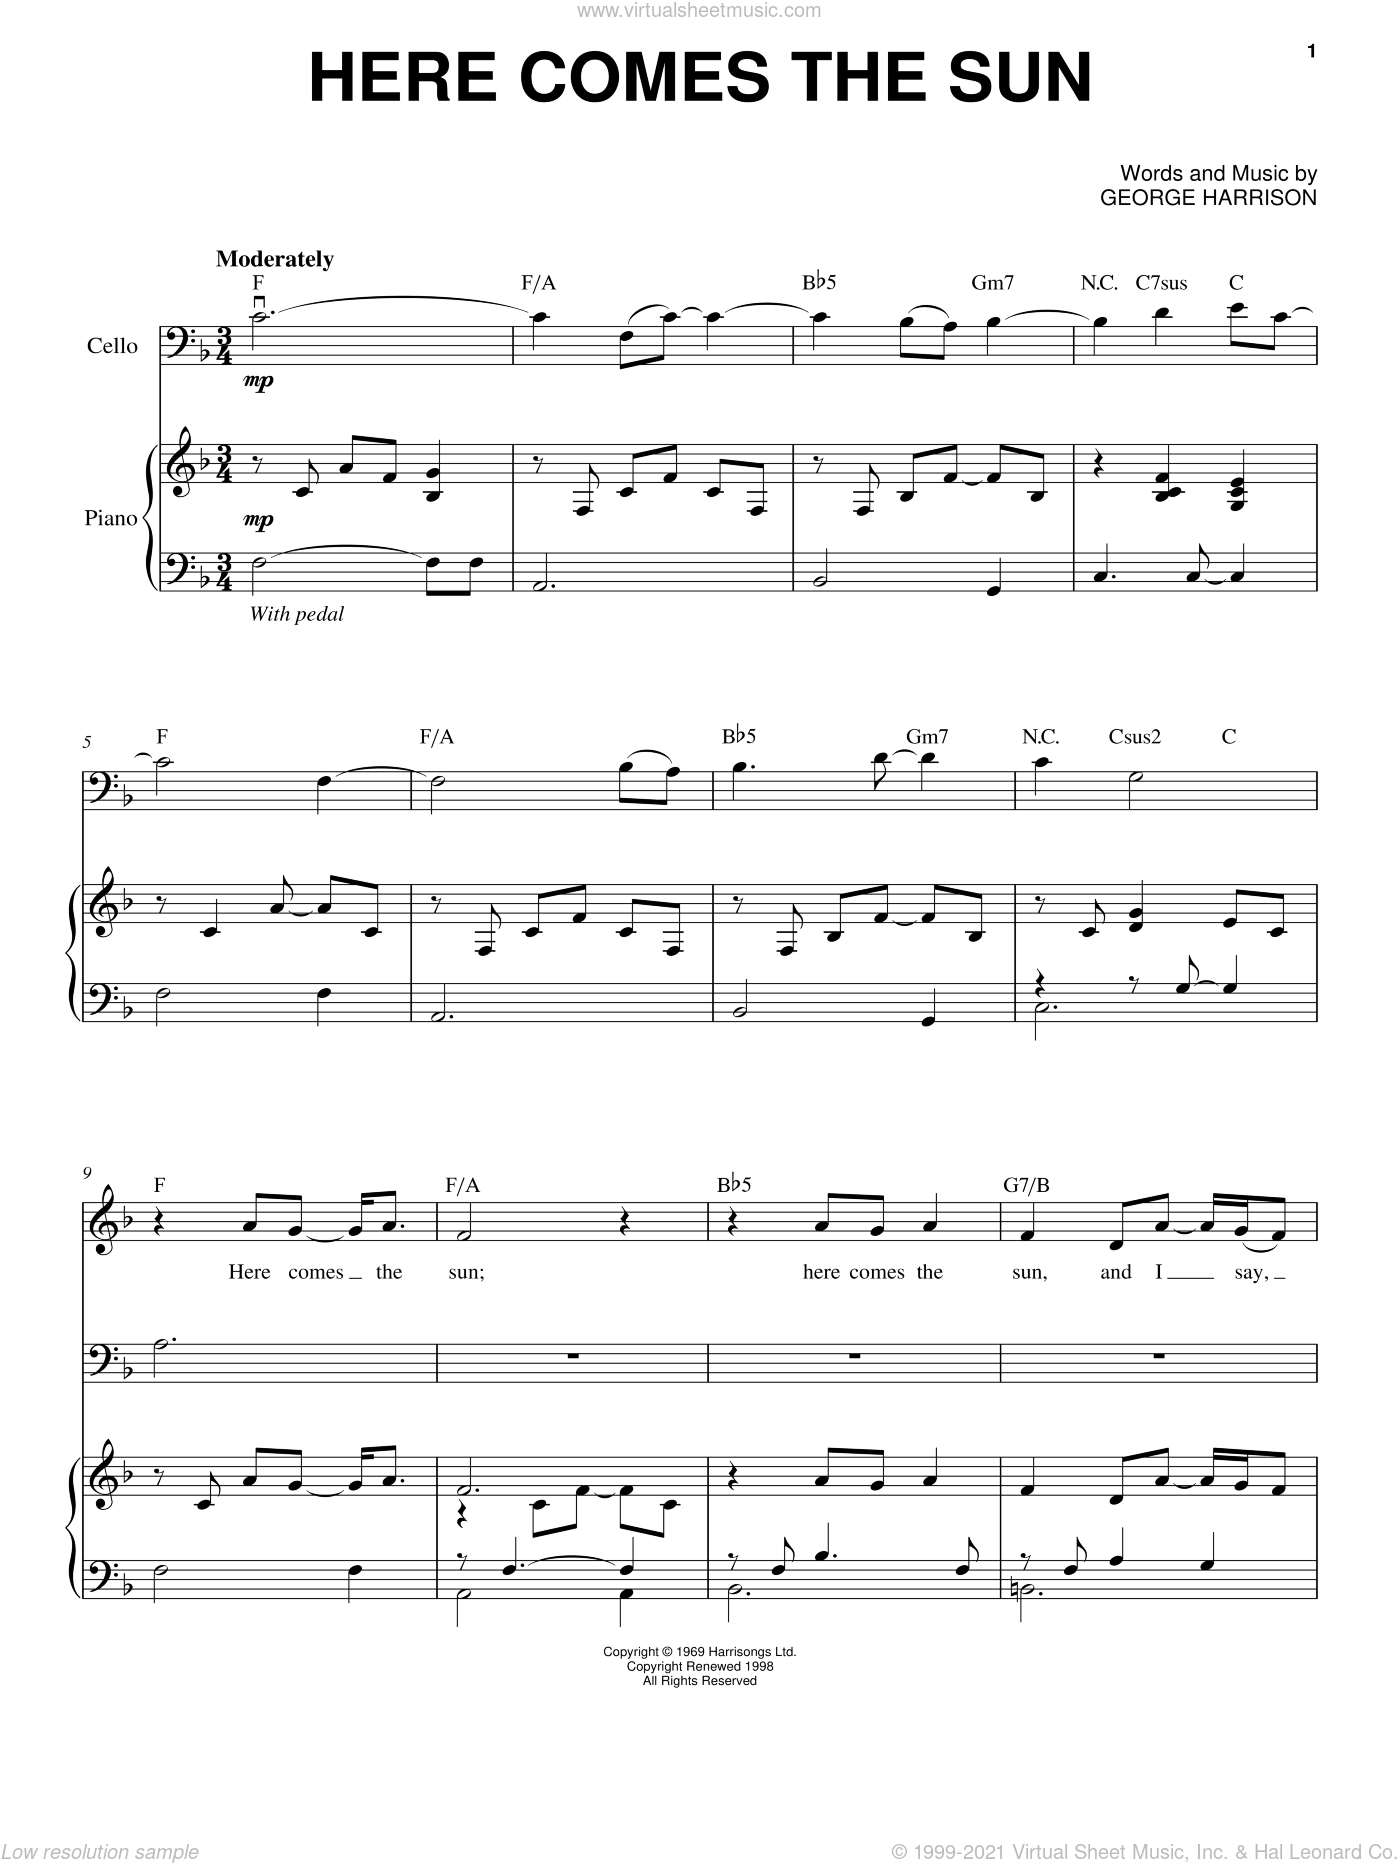 Here Comes The Sun sheet music for cello and piano by Yo-Yo Ma, The Beatles and George Harrison, classical score, intermediate skill level